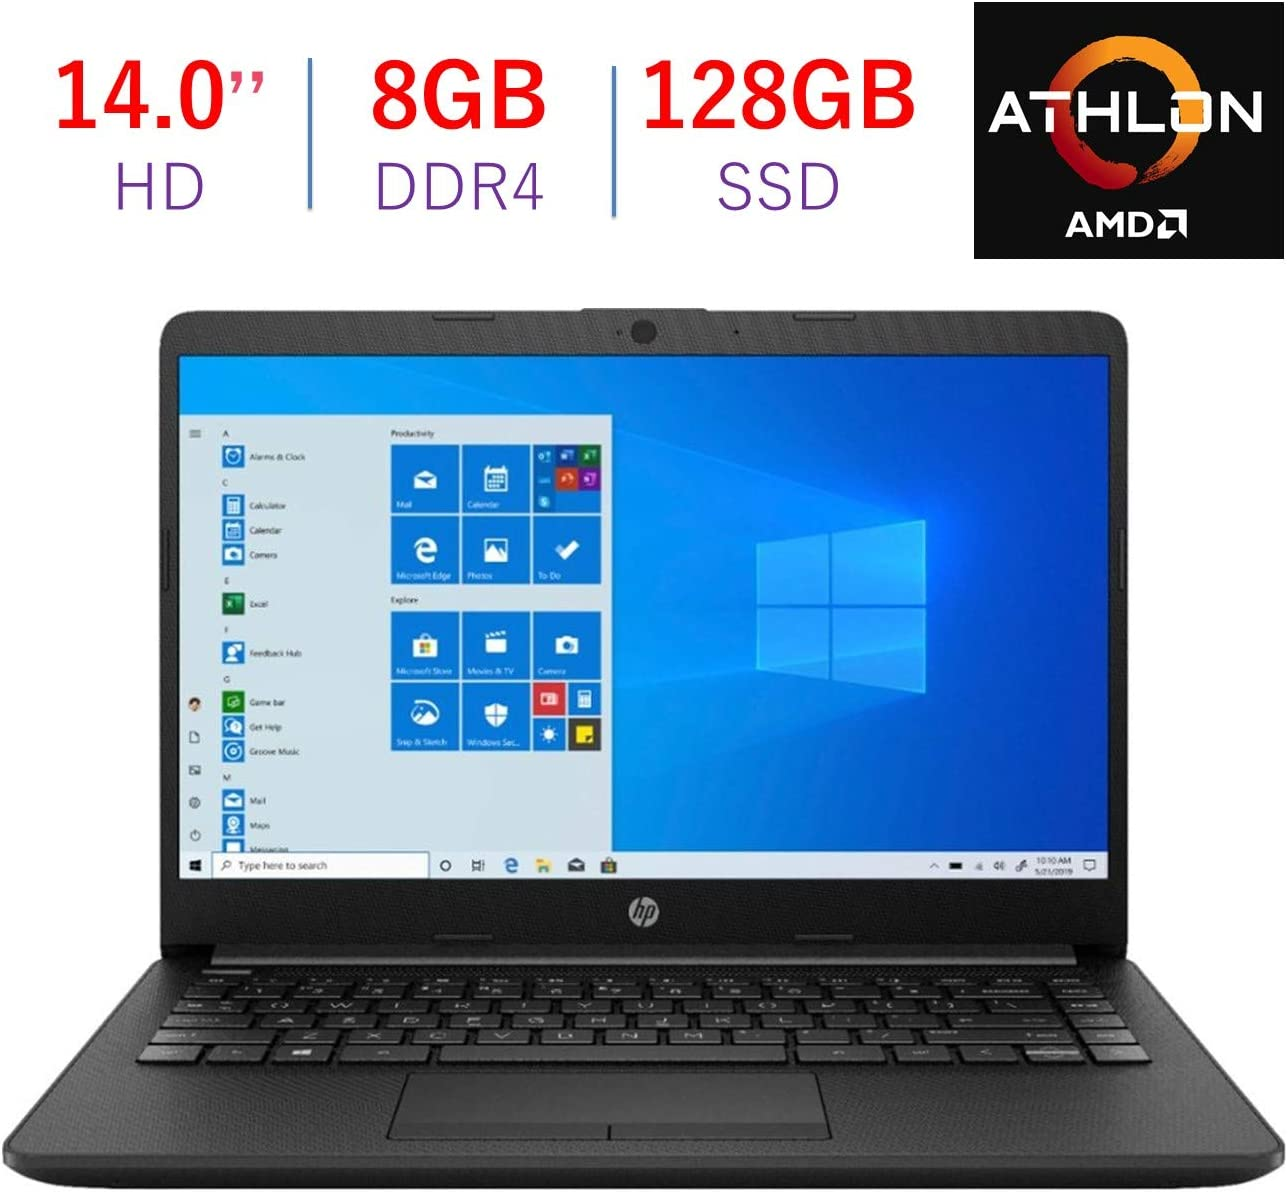 HP Pavilion 14'' HD Anti-Glare Display Laptop PC, AMD Athlon Silver 3050U 2.3GHz, 8GB DDR4, 128GB SSD, AMD Radeon Graphics, Bluetooth, Webcam, Stereo Speakers, HDMI, Windows 10 w/TIGOLOGY Mousepad